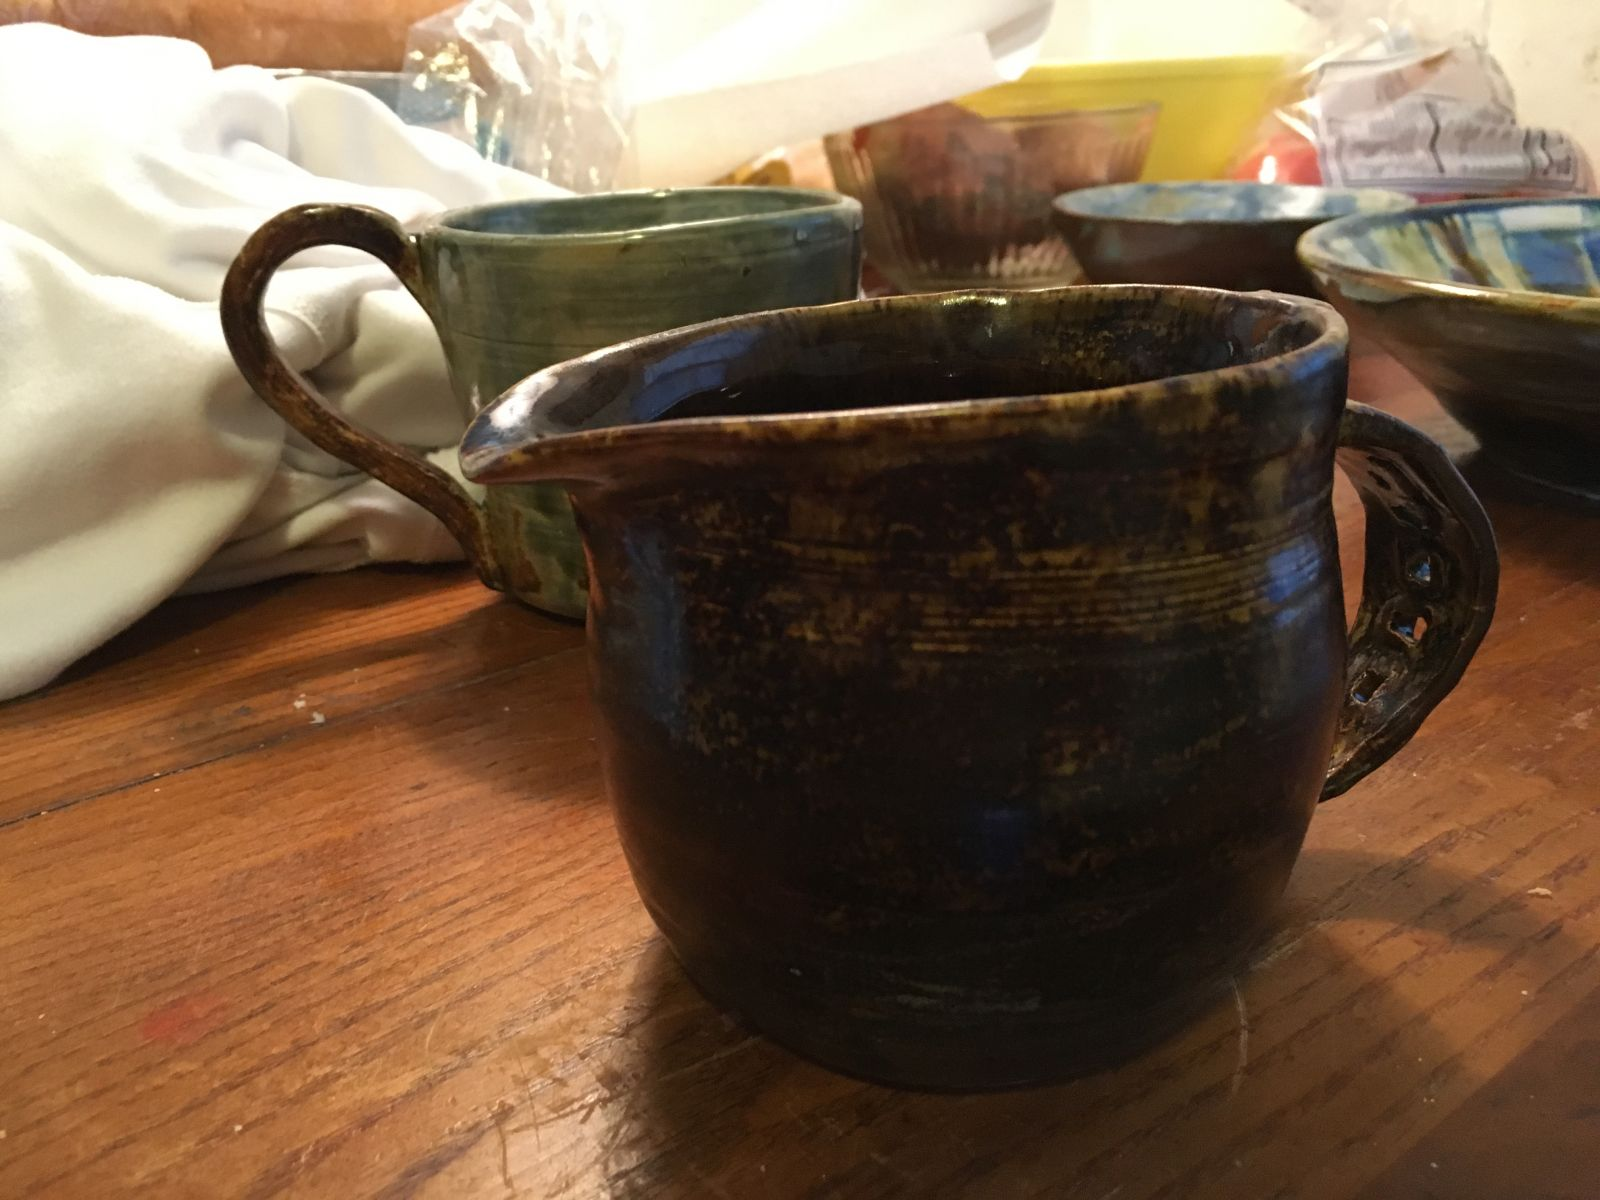 Pitcher fired twice ,first too low then too high